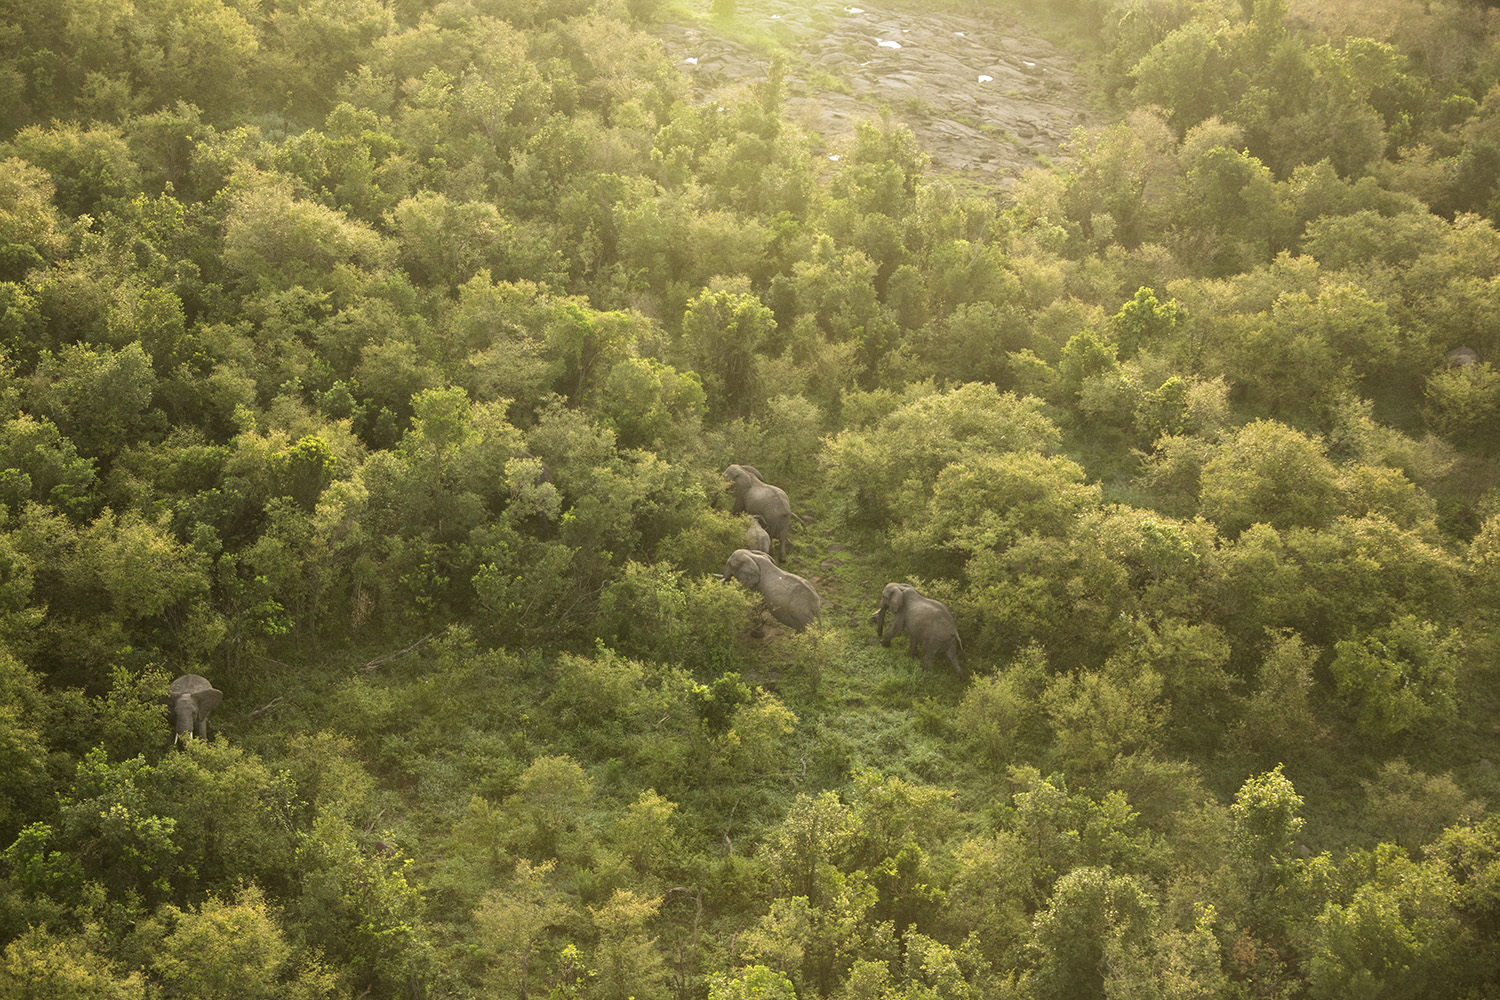 Helicopter elephants in forest